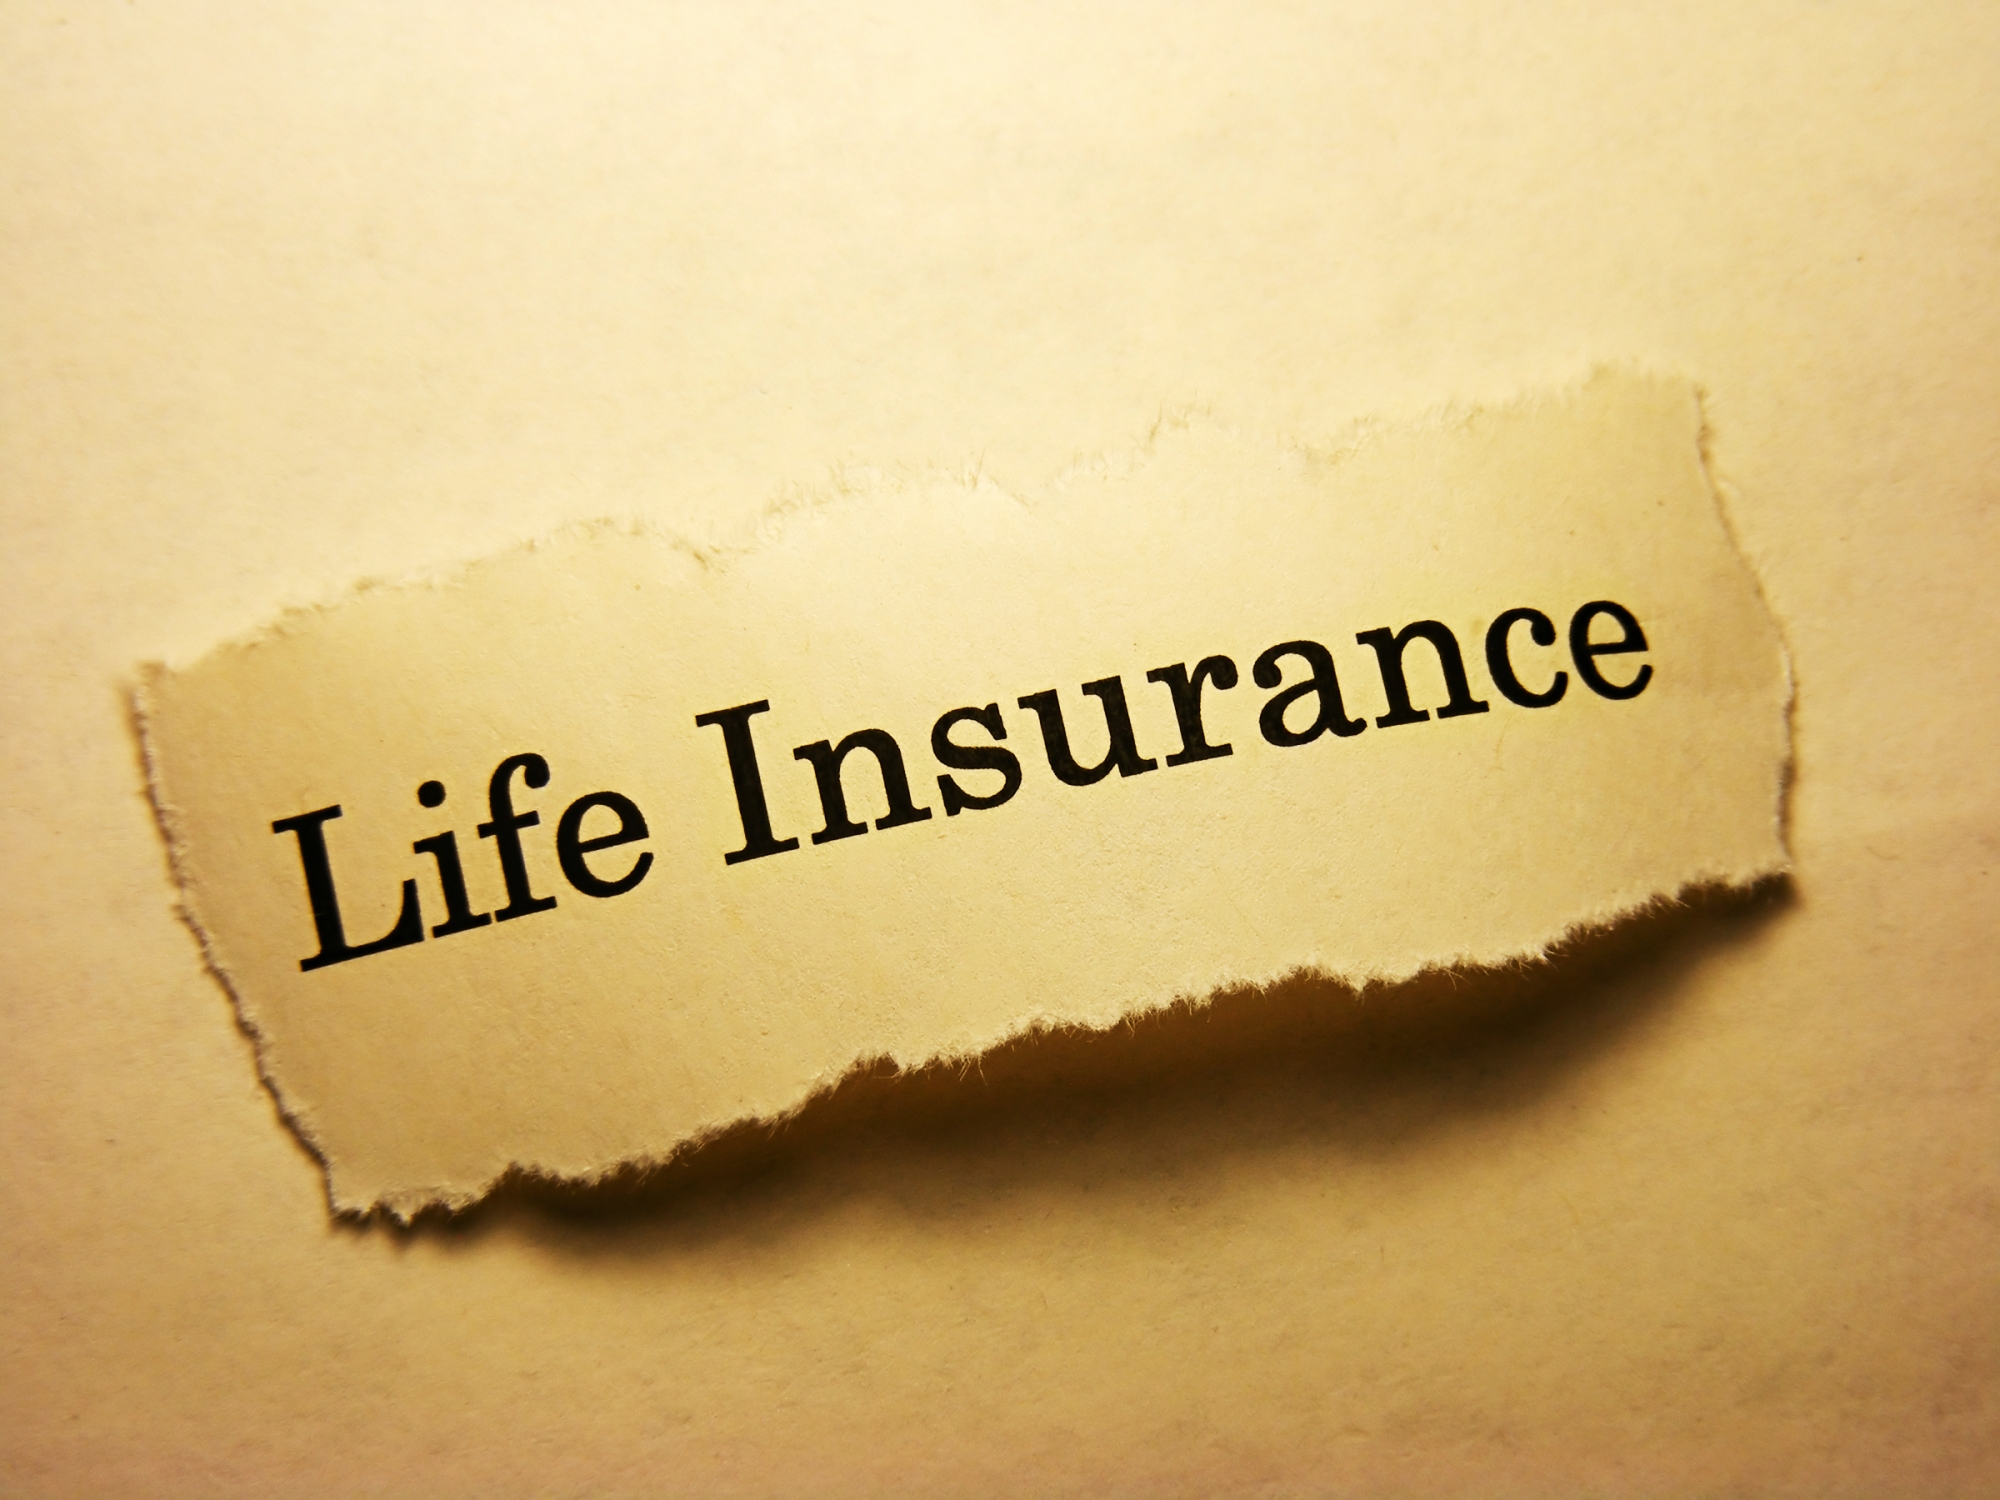 variable life insurance pros and cons philippines